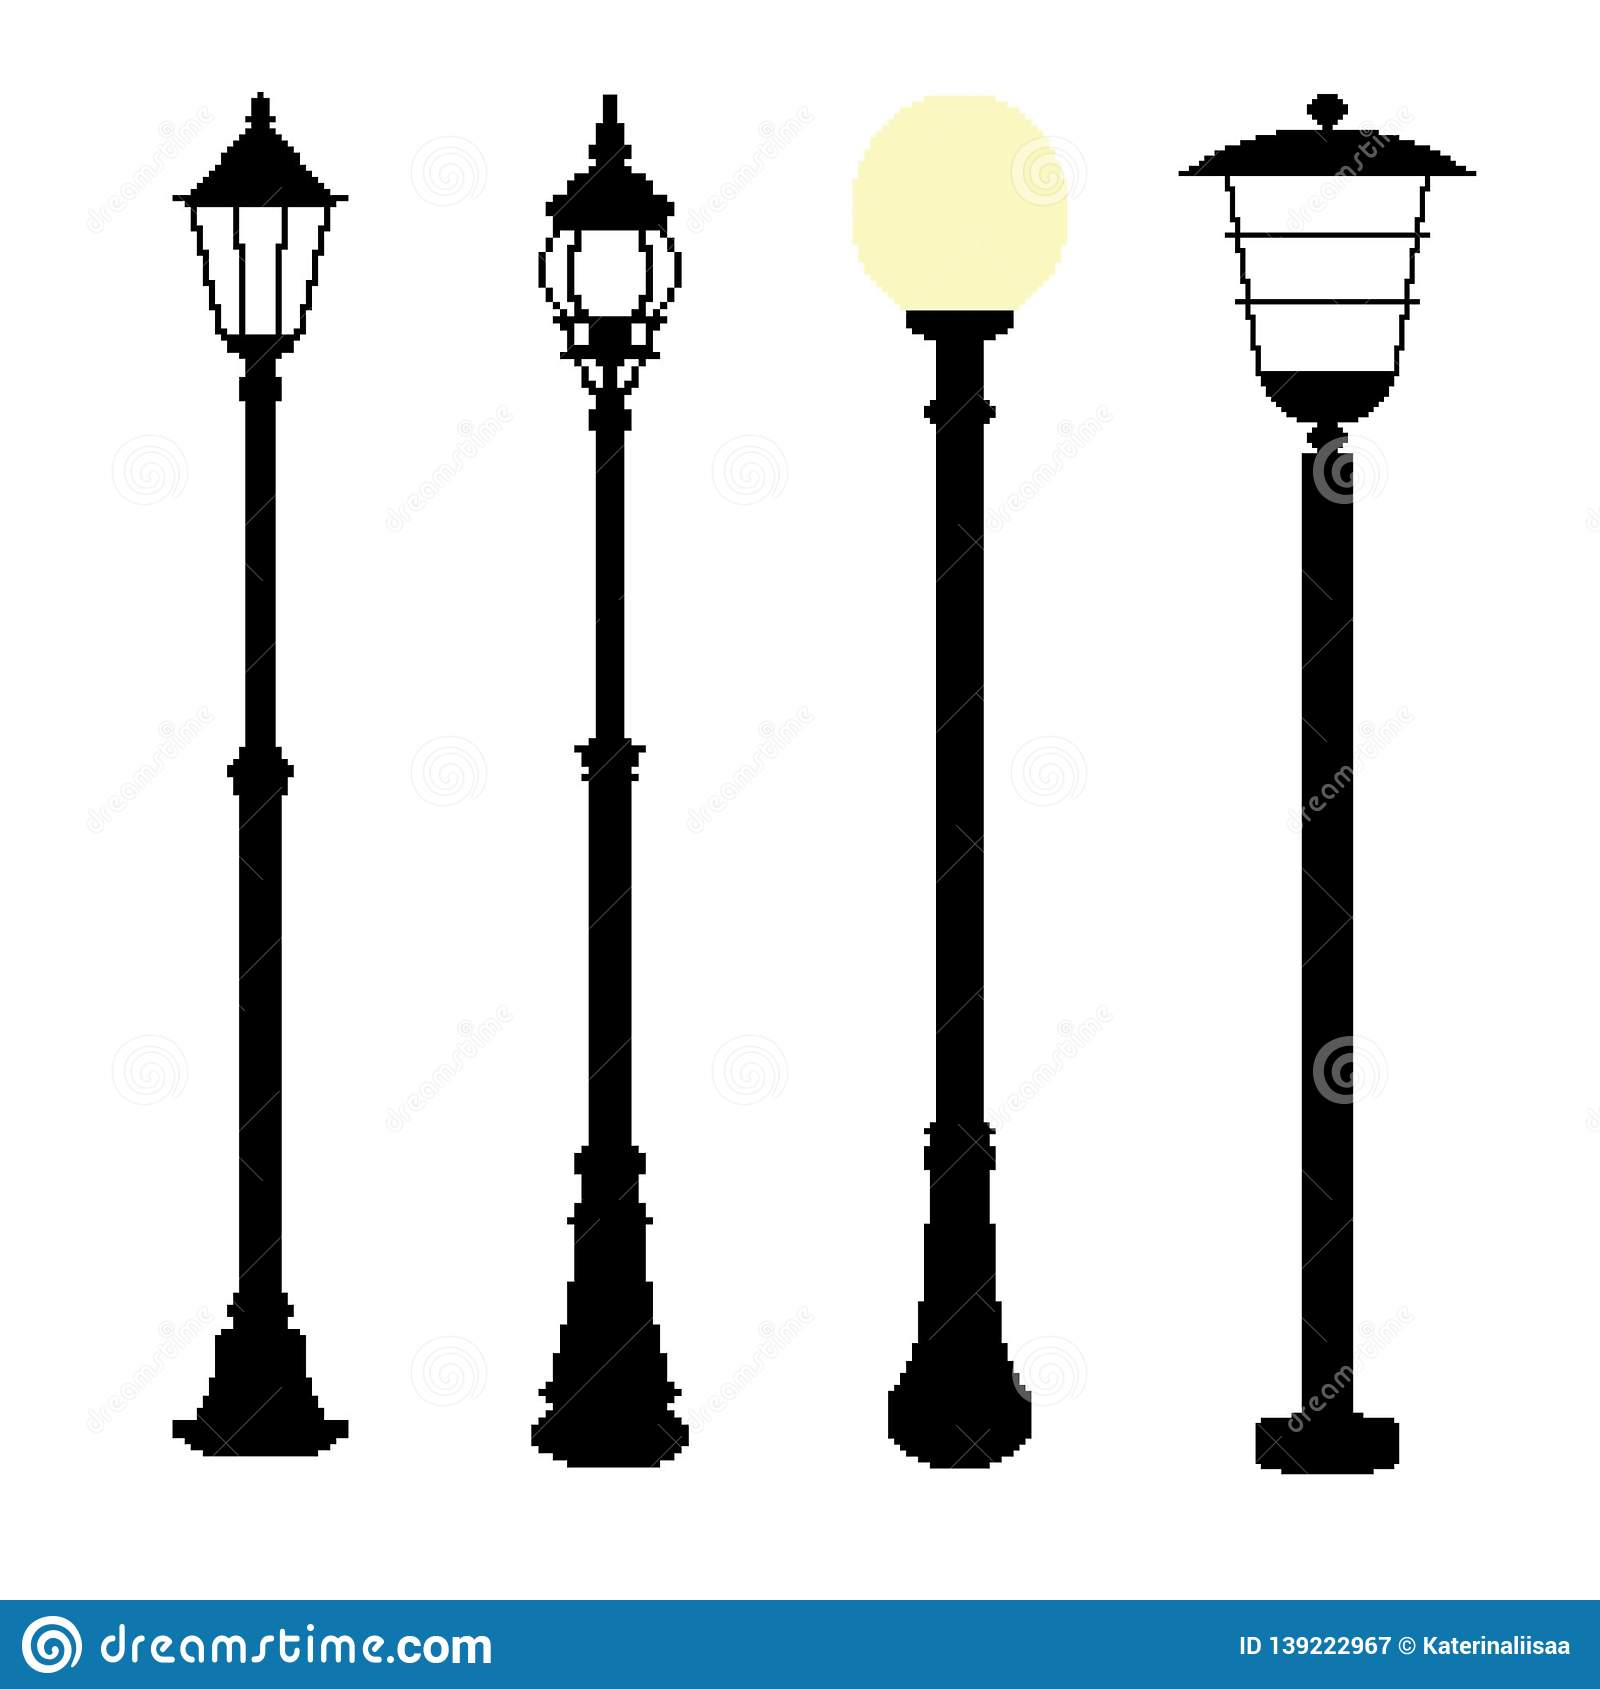 Illustrations collection of pixel streetlights.